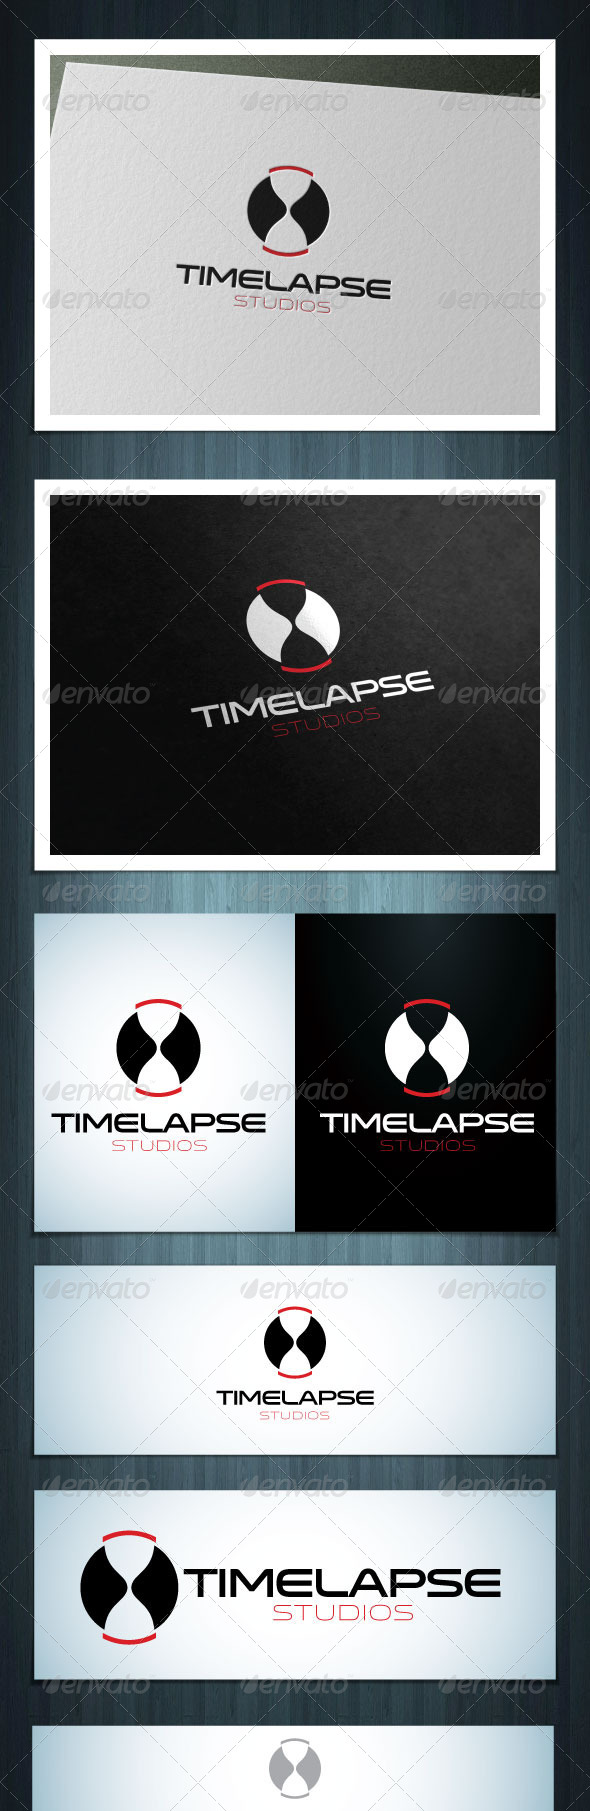 GraphicRiver Timelapse 5697973